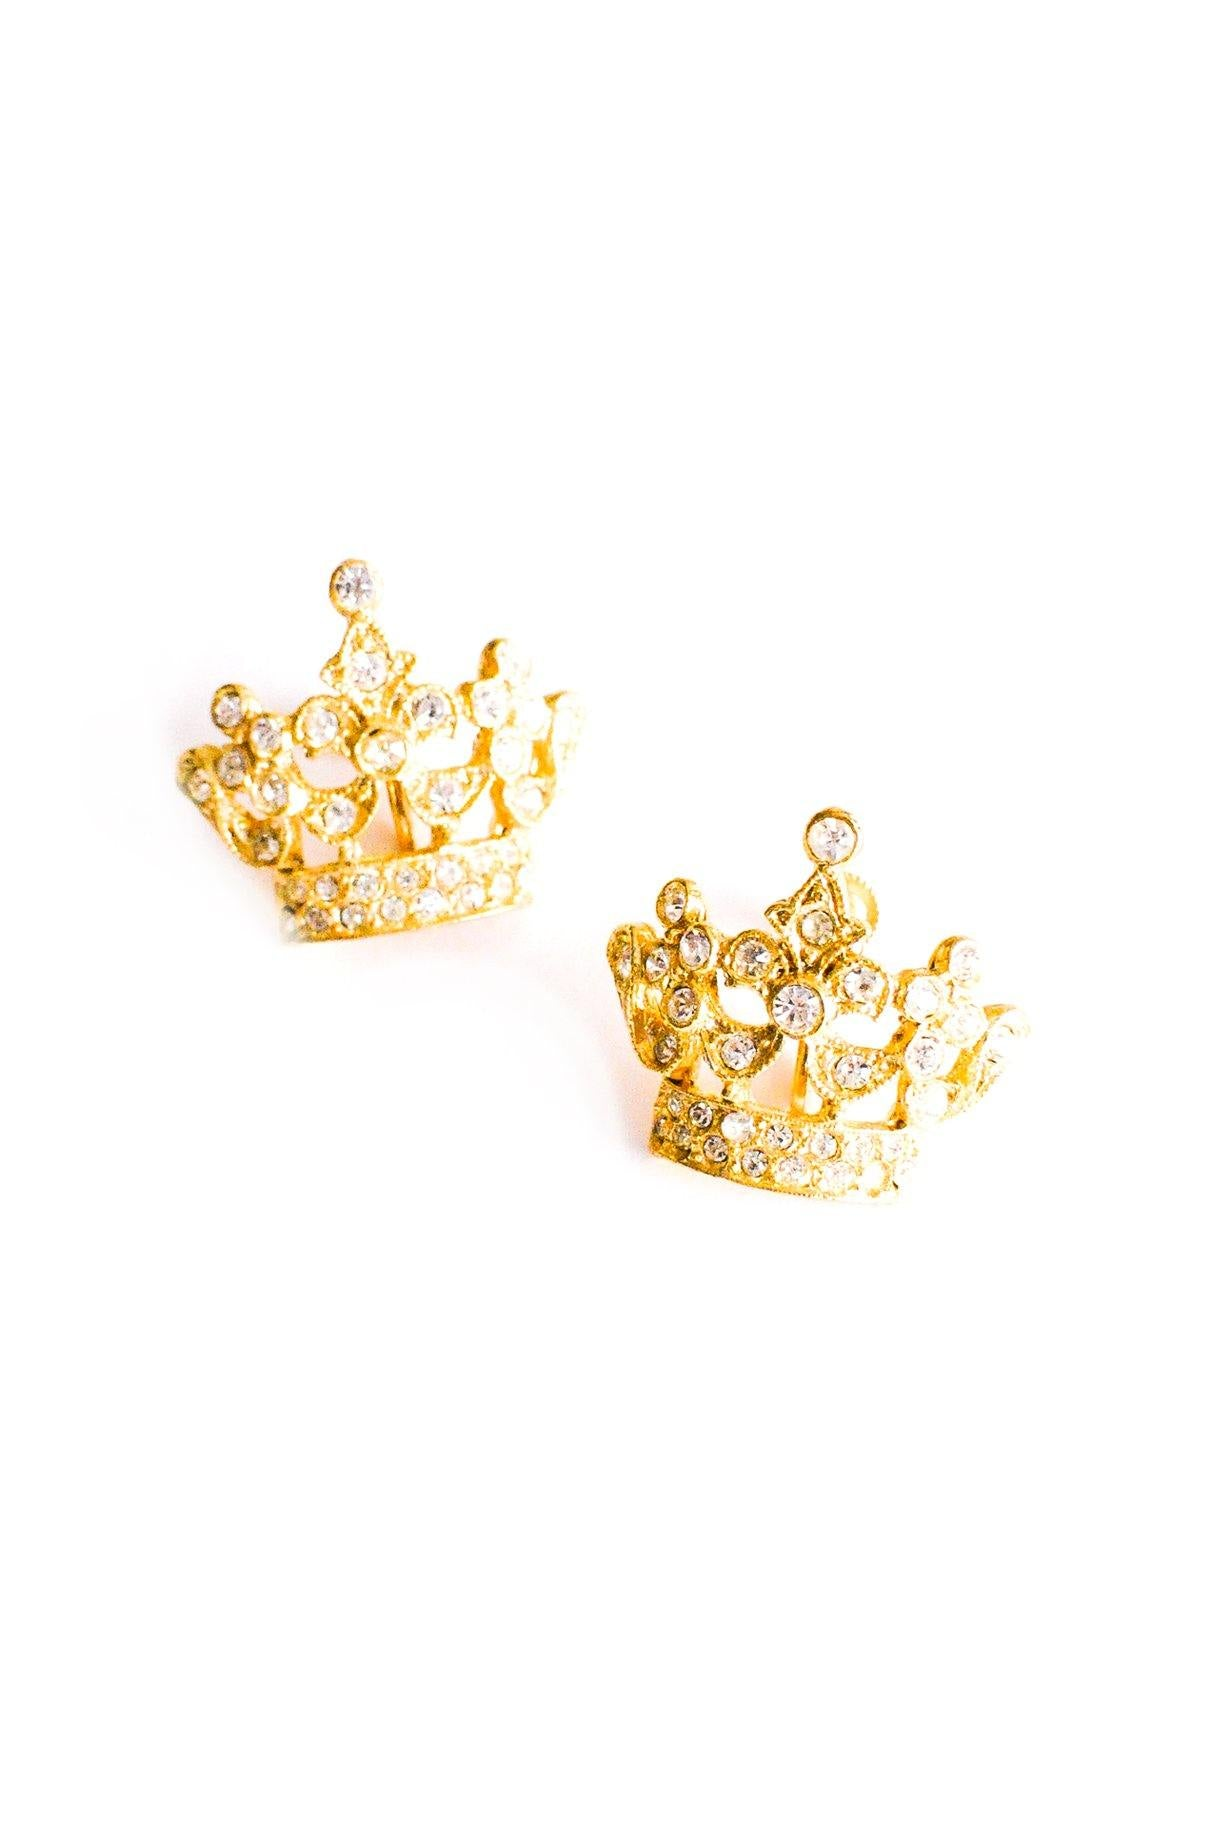 Rhinestone Crown Clip-on Earrings